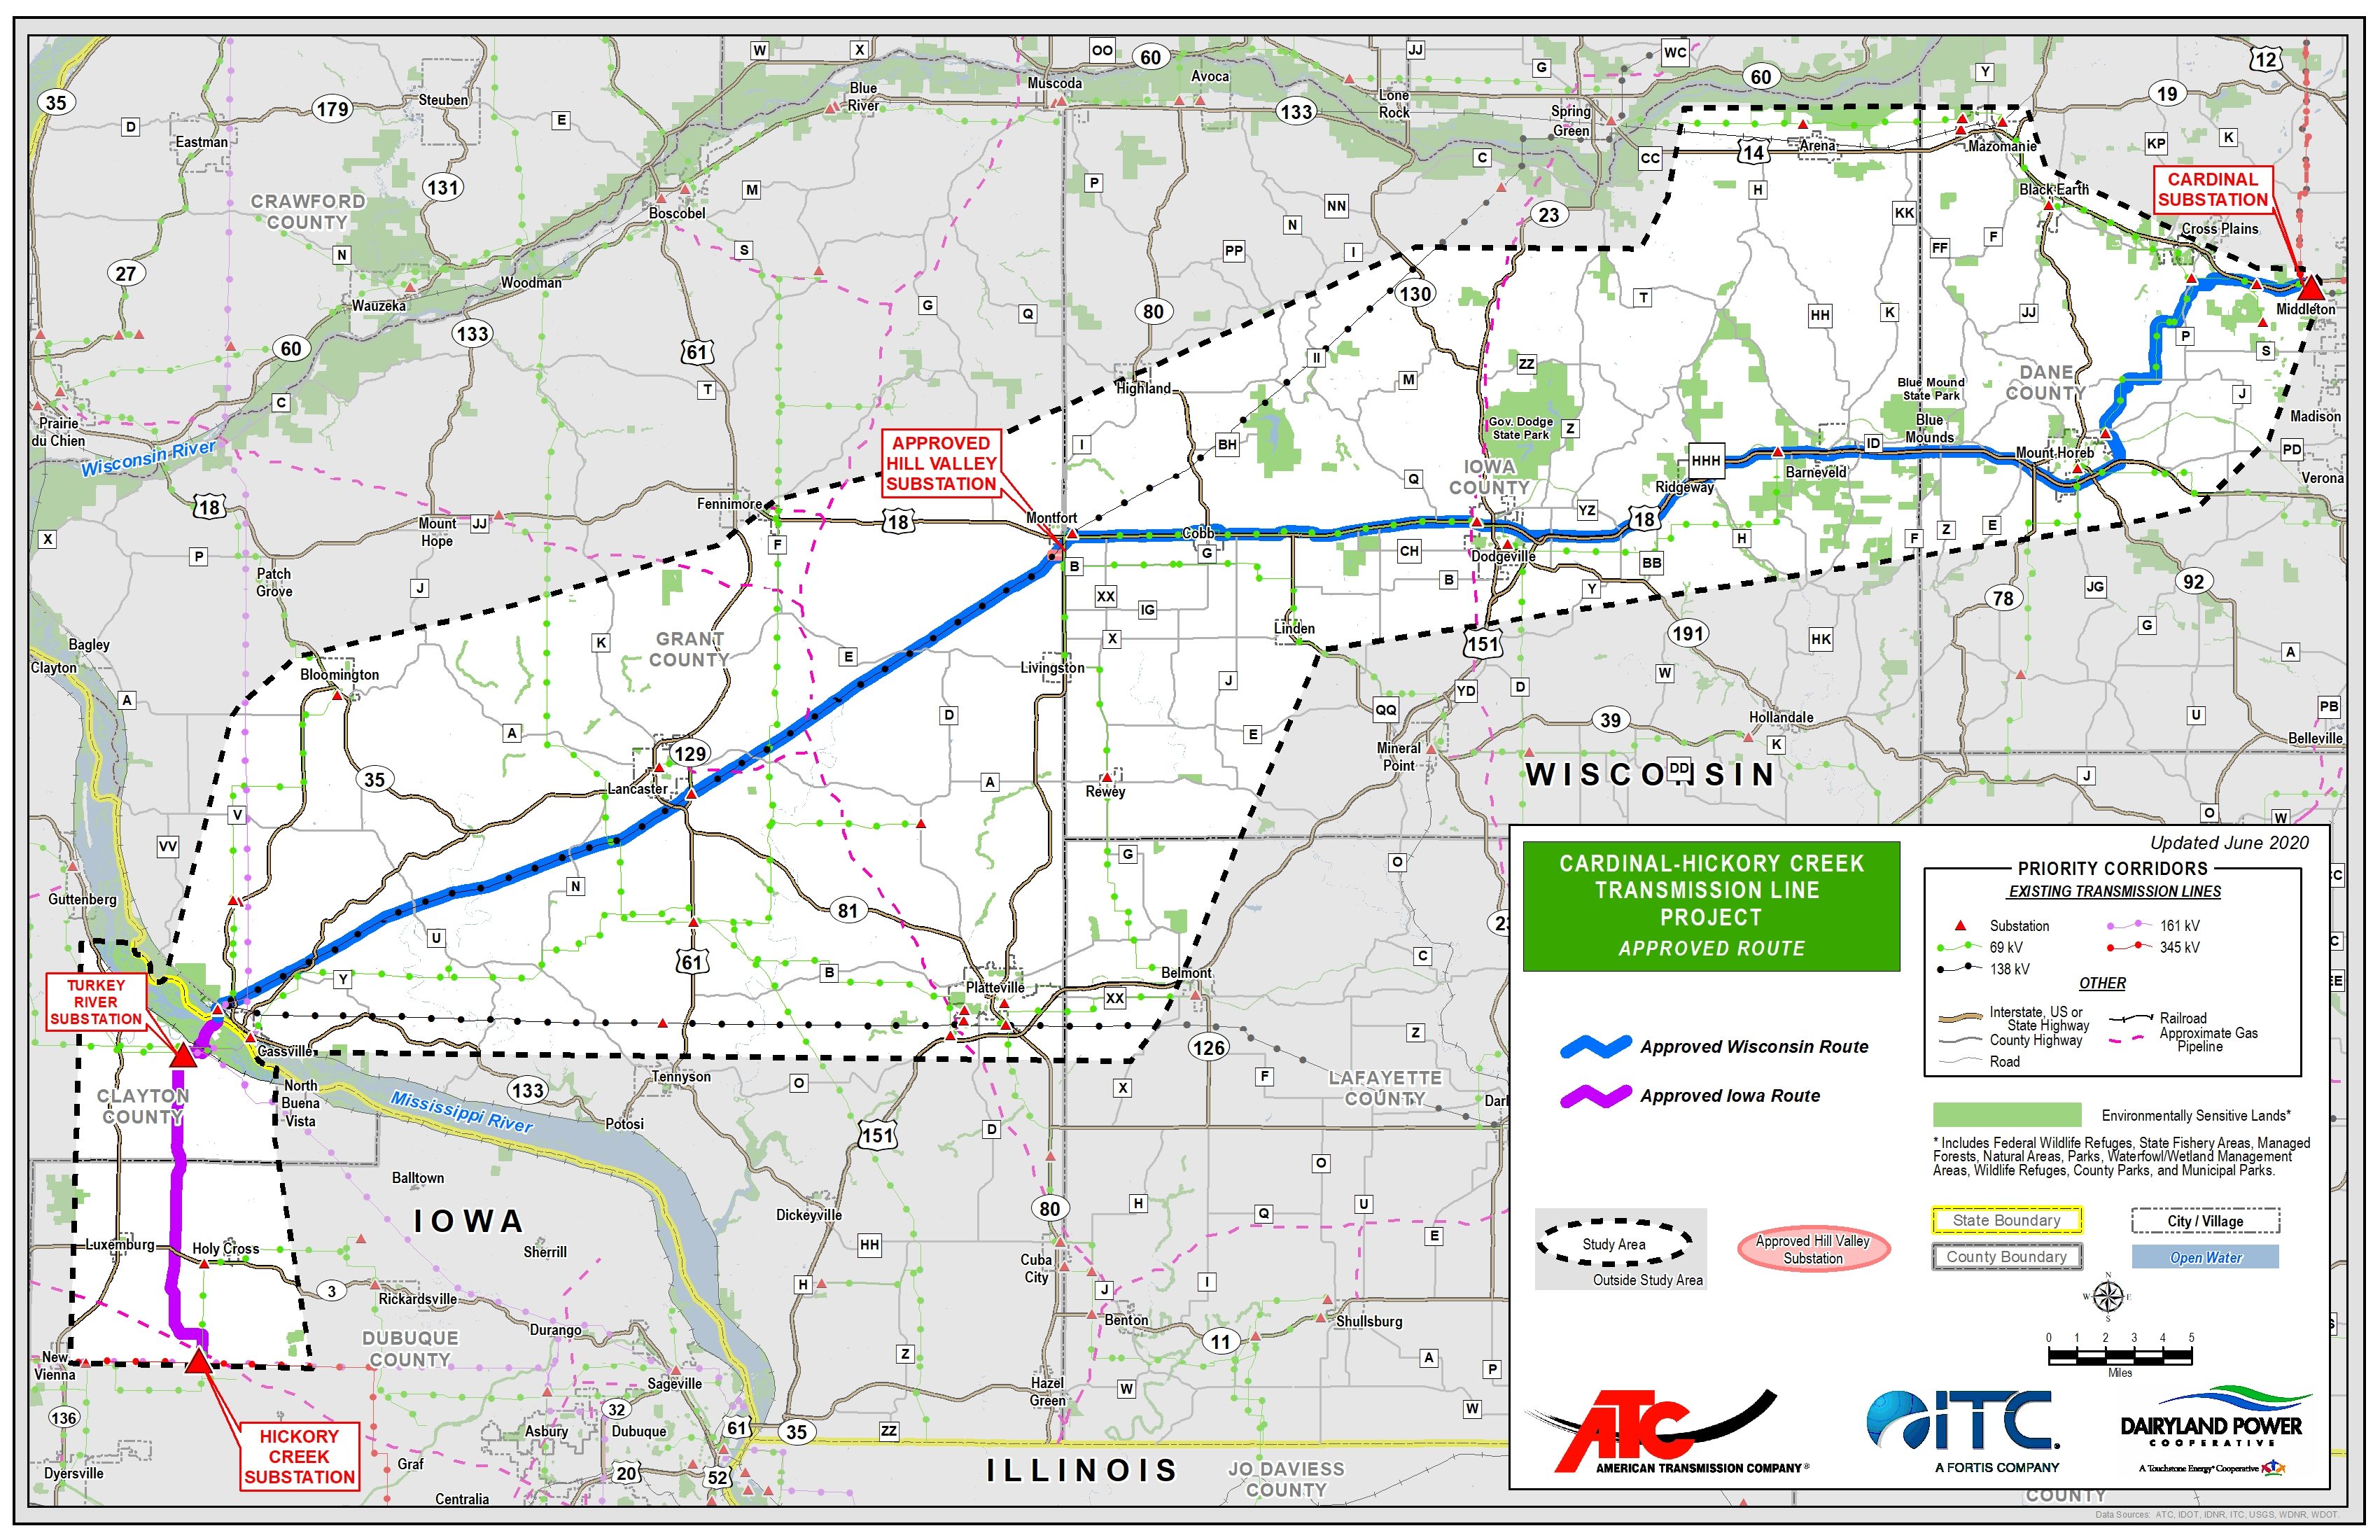 C-HC WI IA Ordered Route 06.08.20